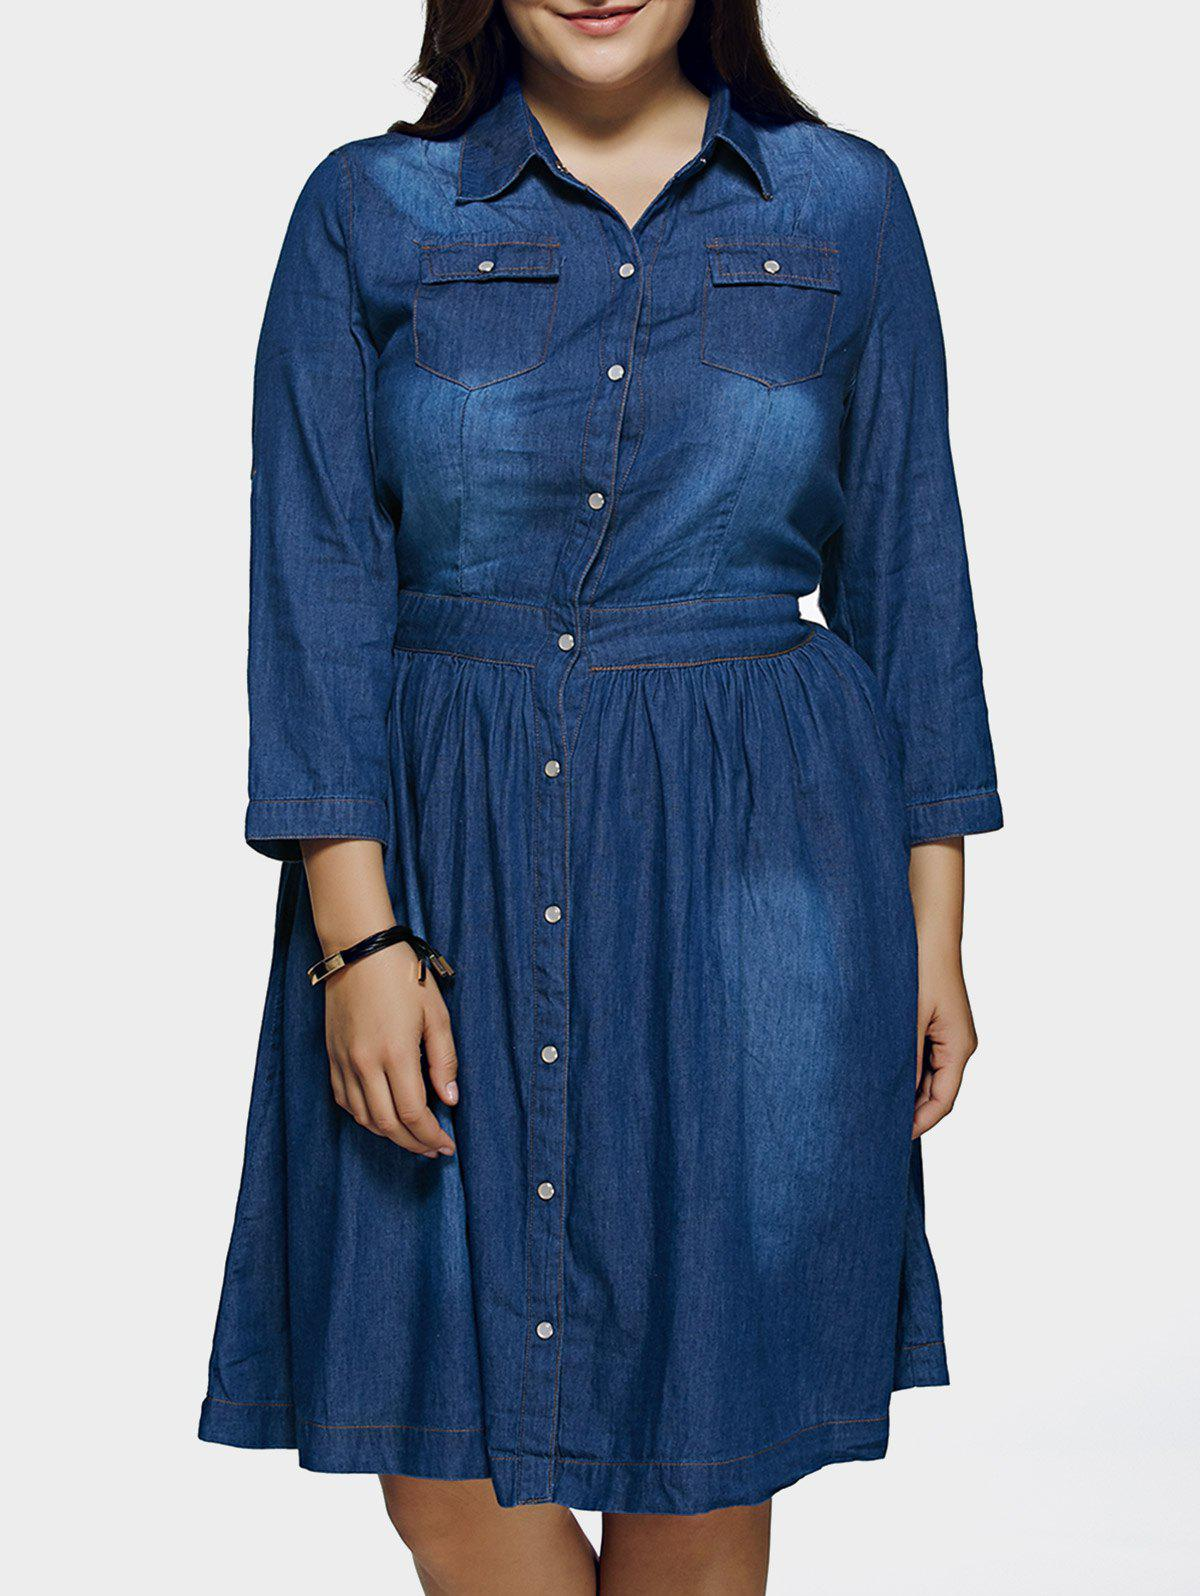 Plus Size Denim Longline Shirt Dress - DEEP BLUE 4XL